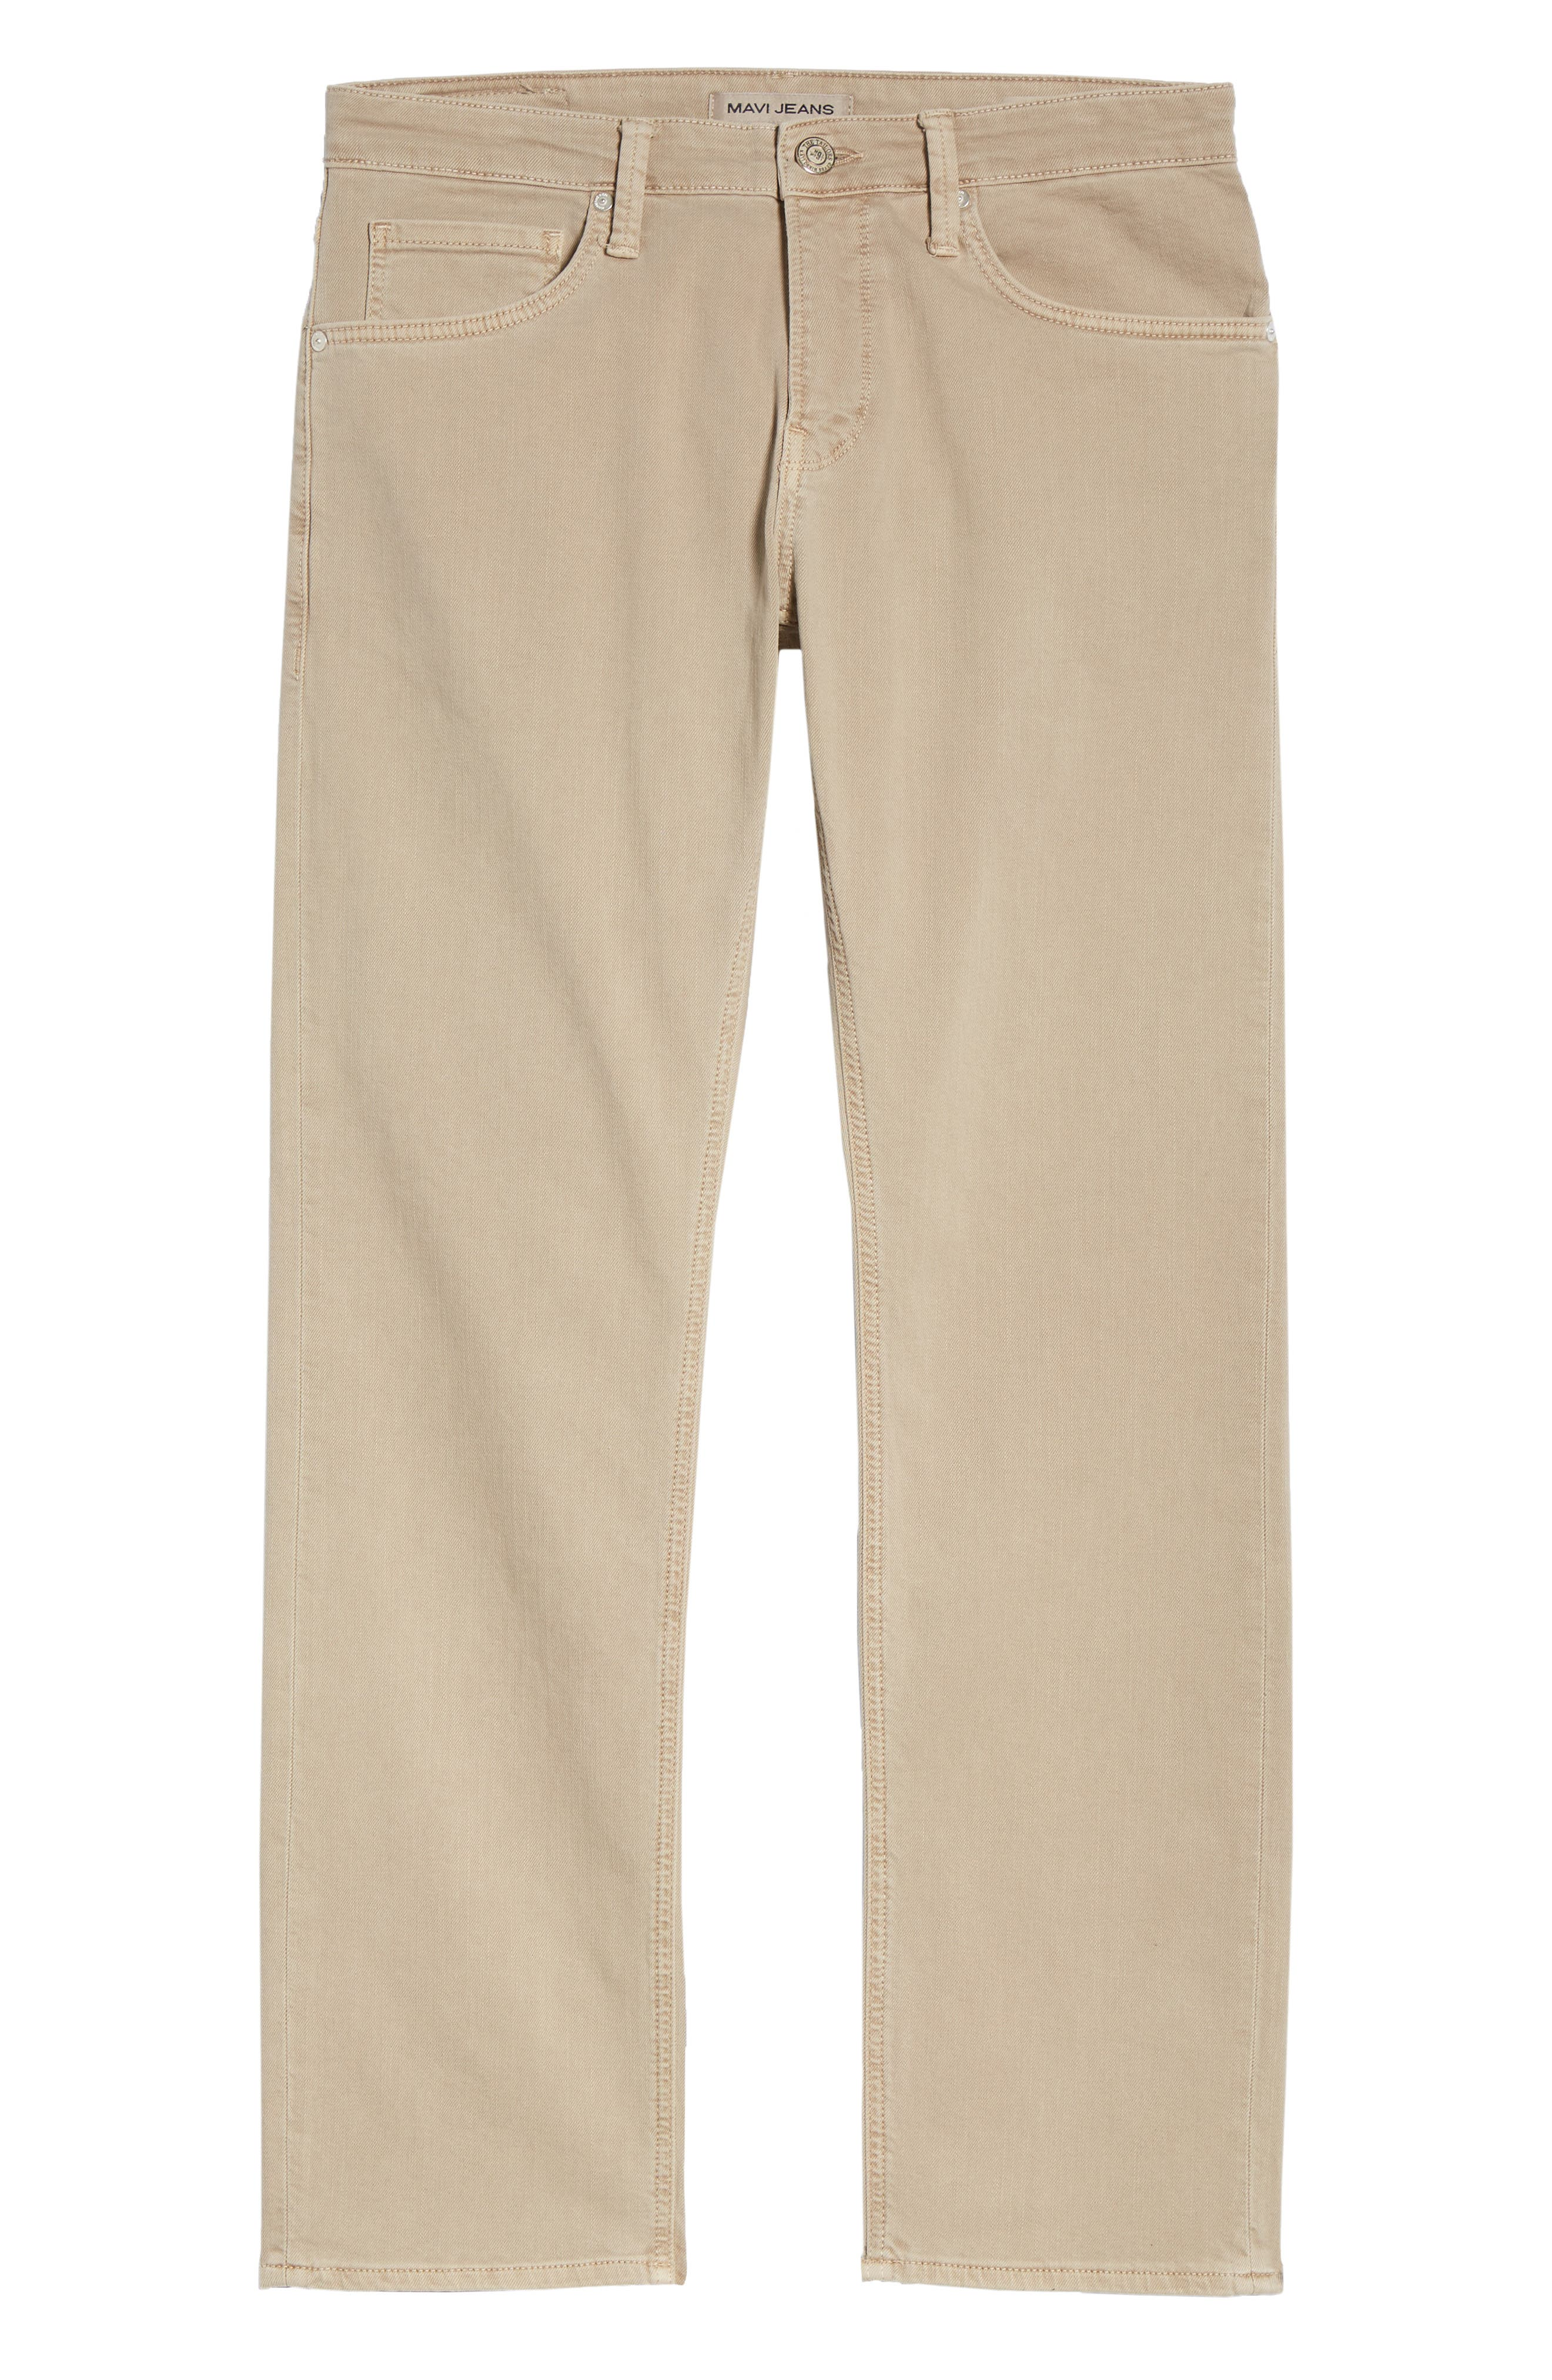 Zach Straight Leg Twill Pants,                             Alternate thumbnail 6, color,                             TAN WASHED